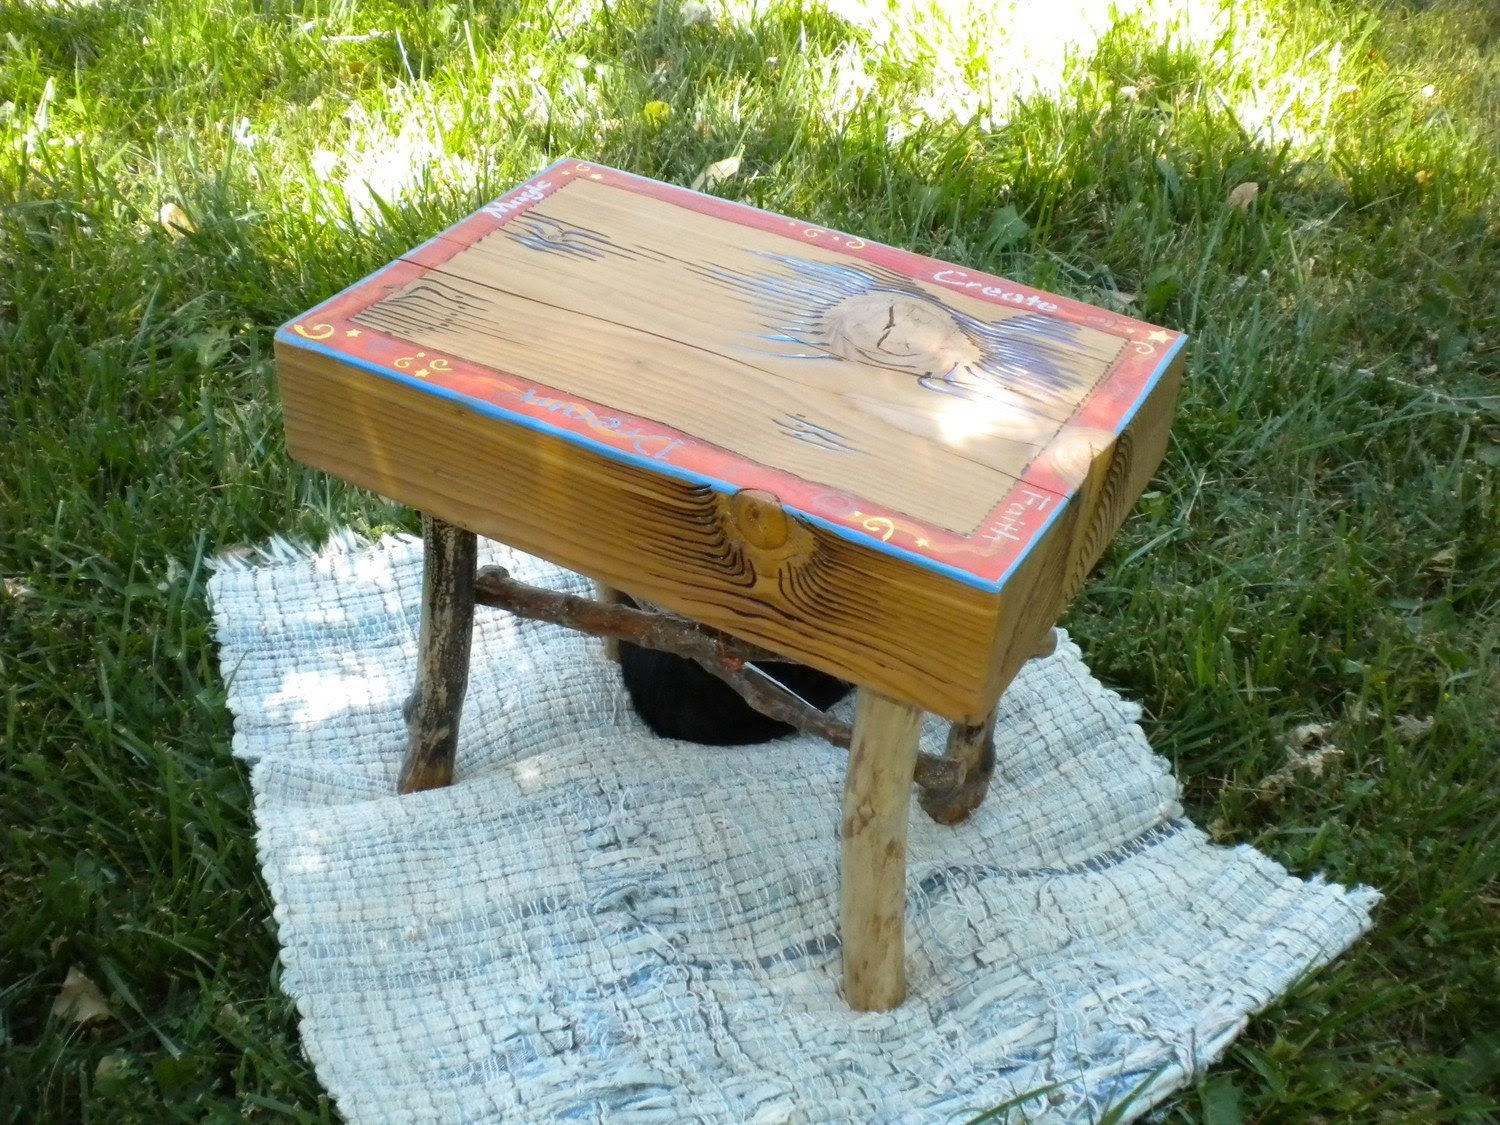 Wood, altar / table / stool , Recycled, upcycled, repurposed, reclaimed